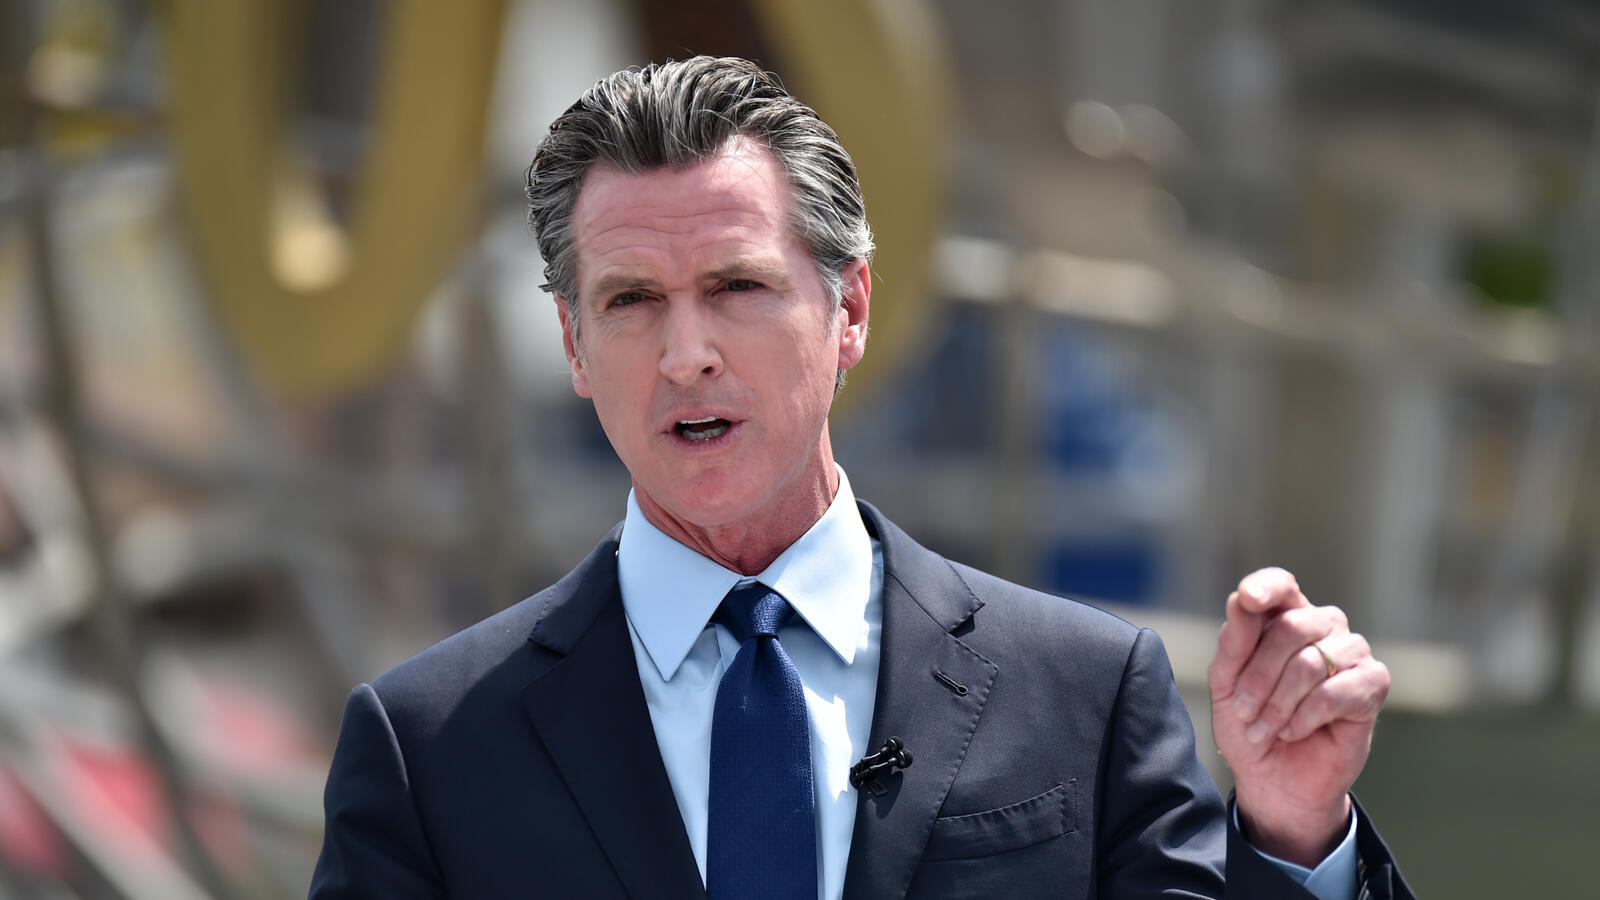 Governor Newsom Not Ready to Mandate Masks Across California... For Now